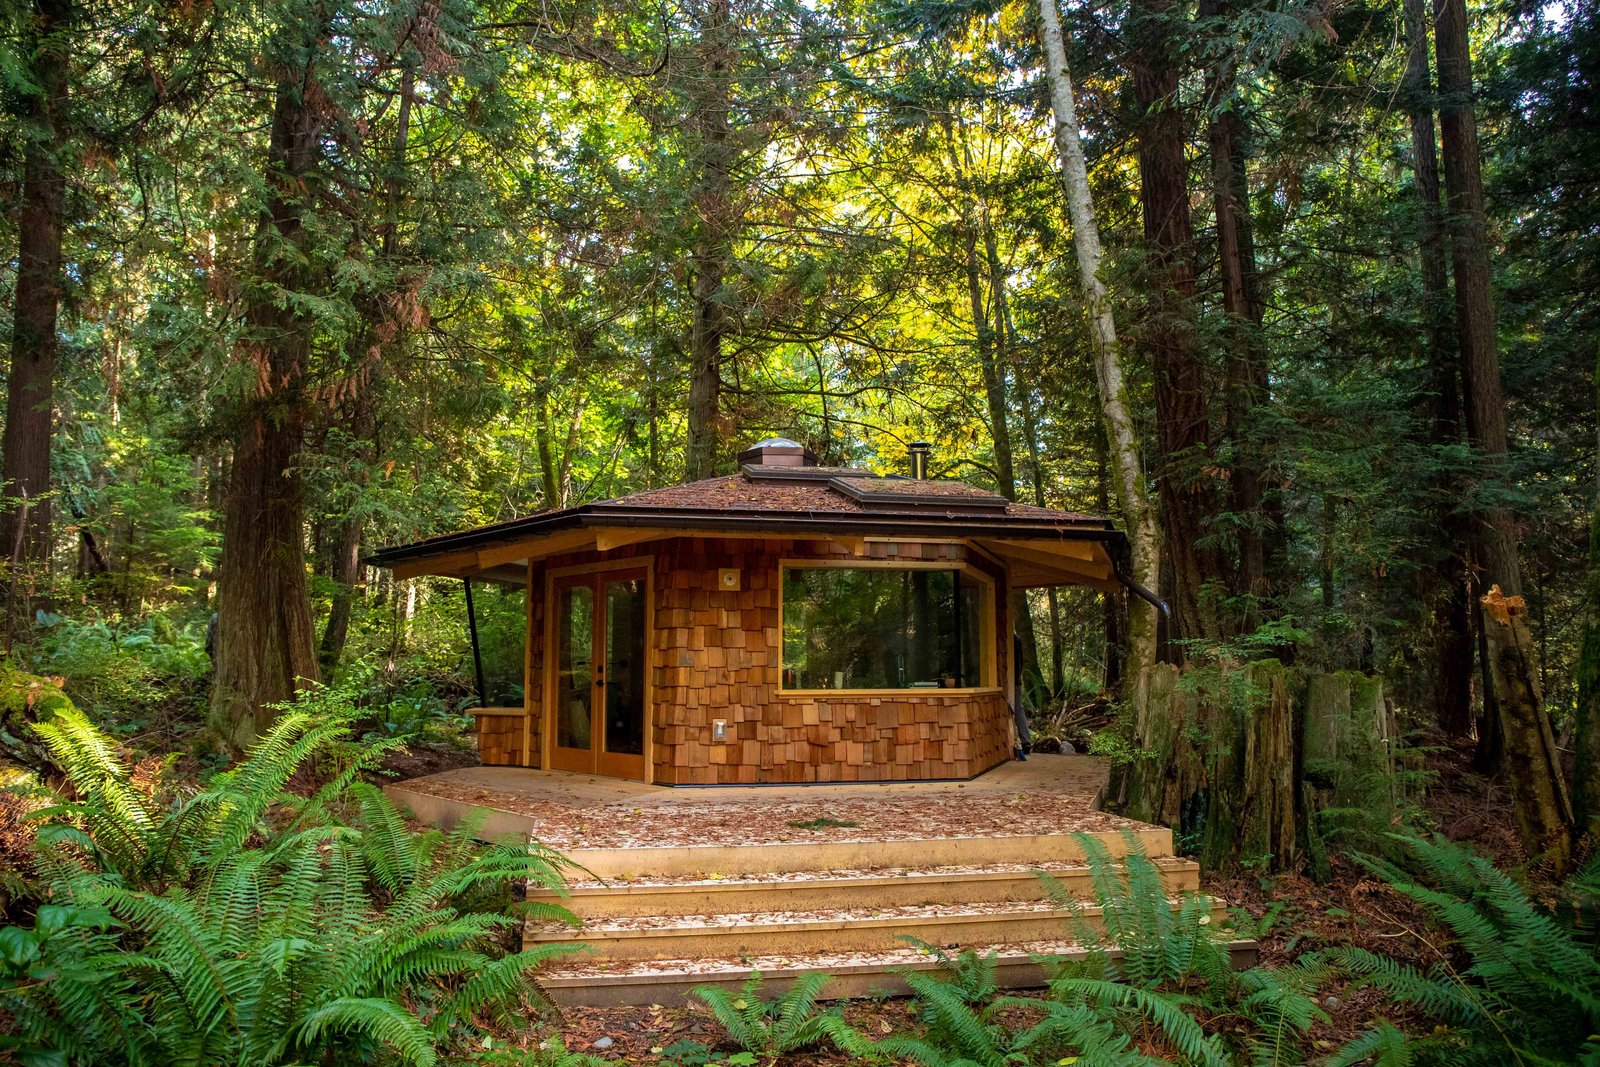 Exterior, Tiny Home, Metal, Wood, and Hipped The hexagonal backyard studio that Marlin and Ryan Hanson designed and built in British Columbia, Canada, is clad with western red cedar shakes and a metal roof.  Exterior Tiny Home Hipped Photos from Two Brothers Build a Woody, Hexagonal Studio in the Forest